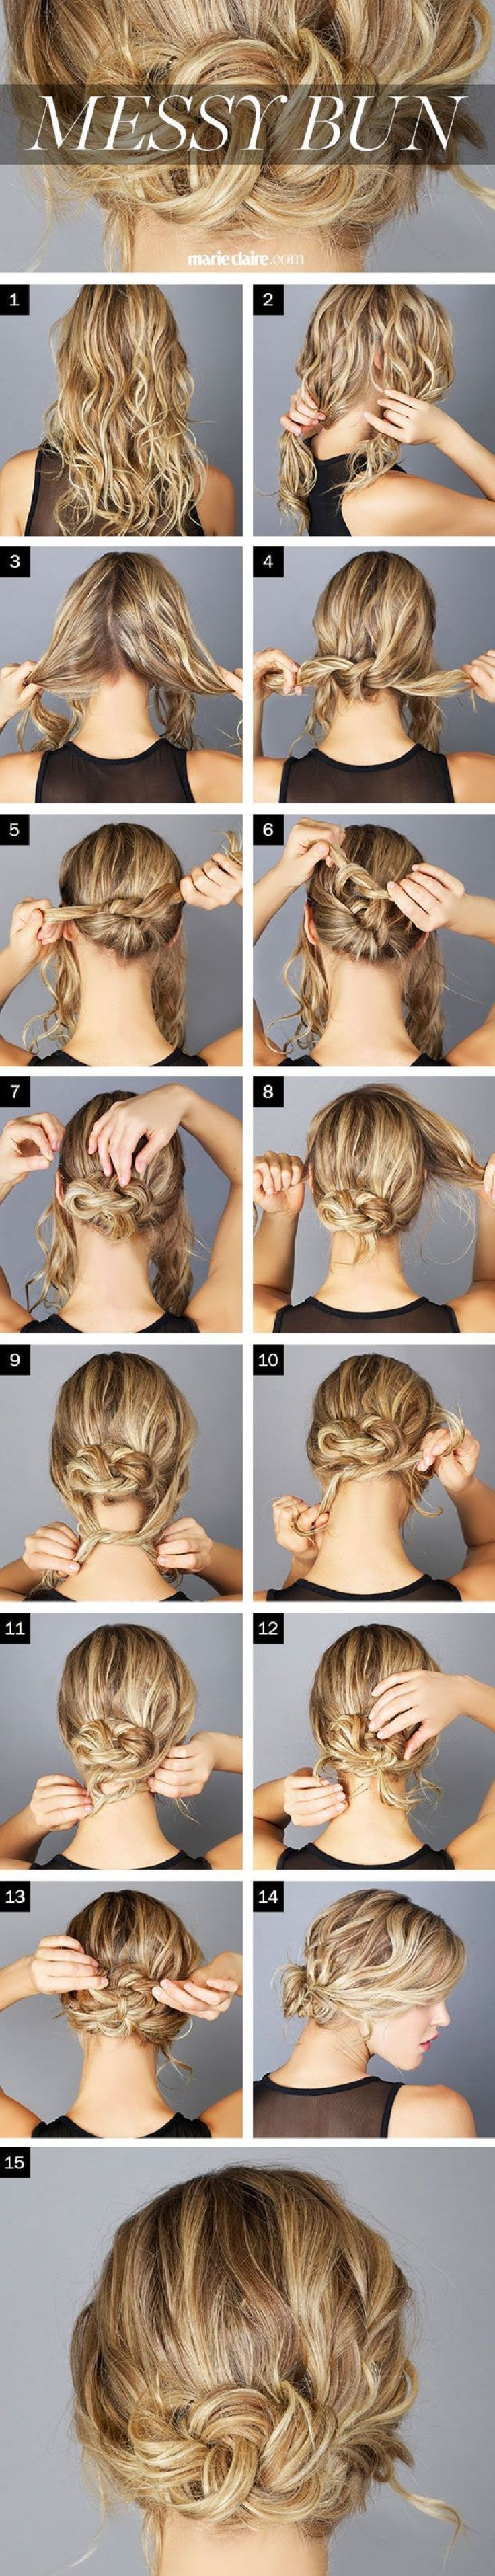 best THE HAIR I WANT images on Pinterest Hair Chignons and Colors